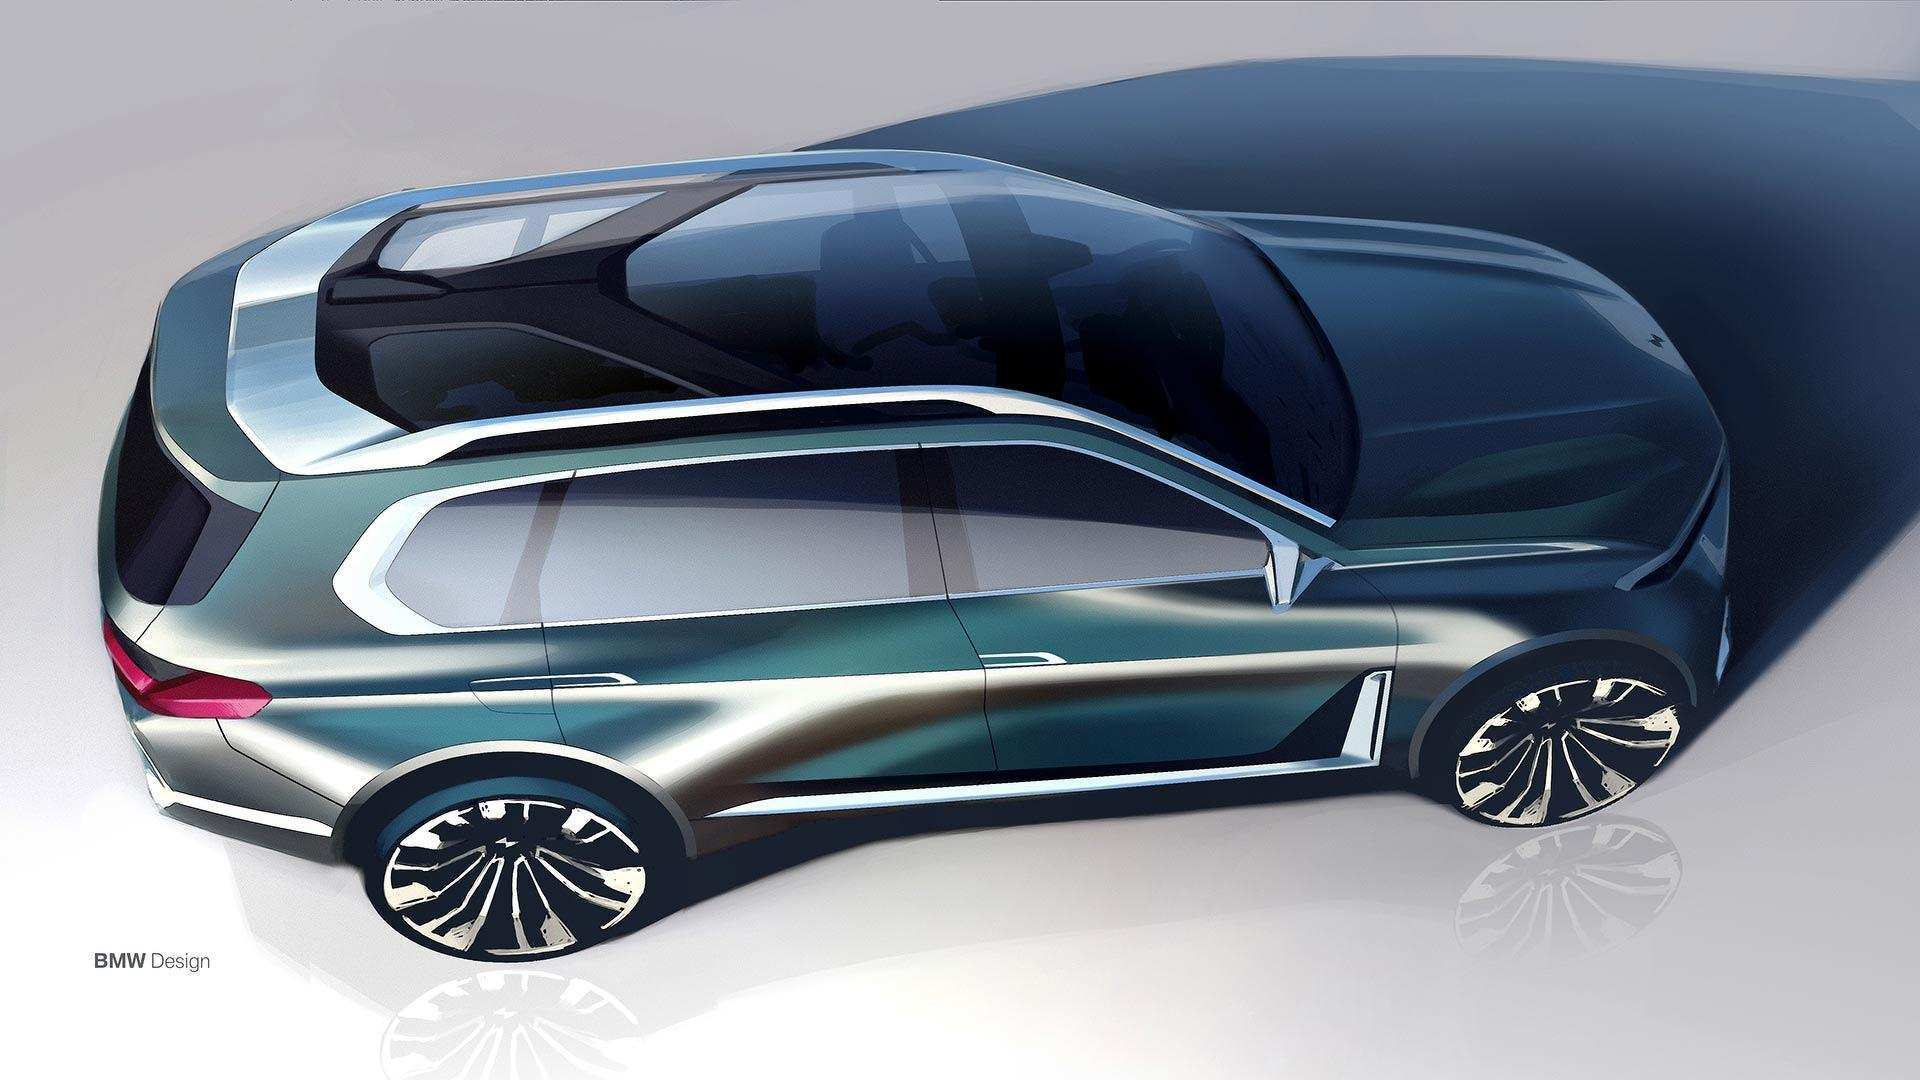 97 Great 2020 Bmw Concept Picture for 2020 Bmw Concept